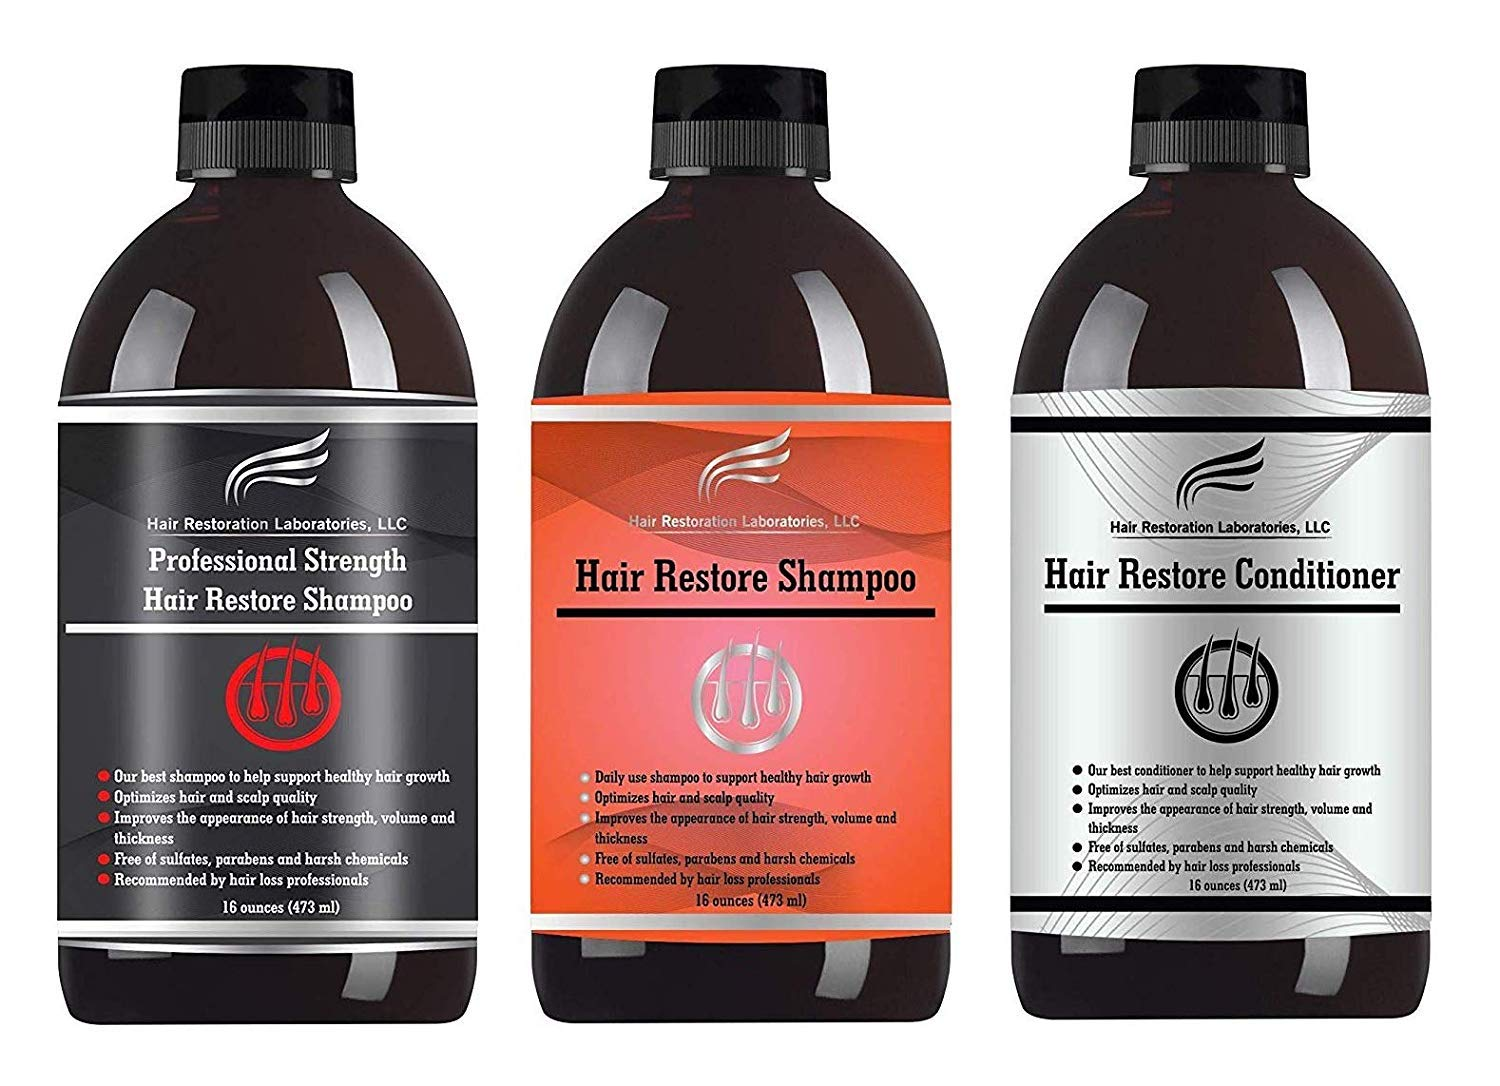 Hair Restoration Laboratories 2019 - Hair Restore DHT Blocking Shampoo, Conditioner and Professional Strength Shampoo Set. The Most Effective Daily Use Hair Growth Treatment For Men and Woman by Hair Restoration Laboratories, LLC